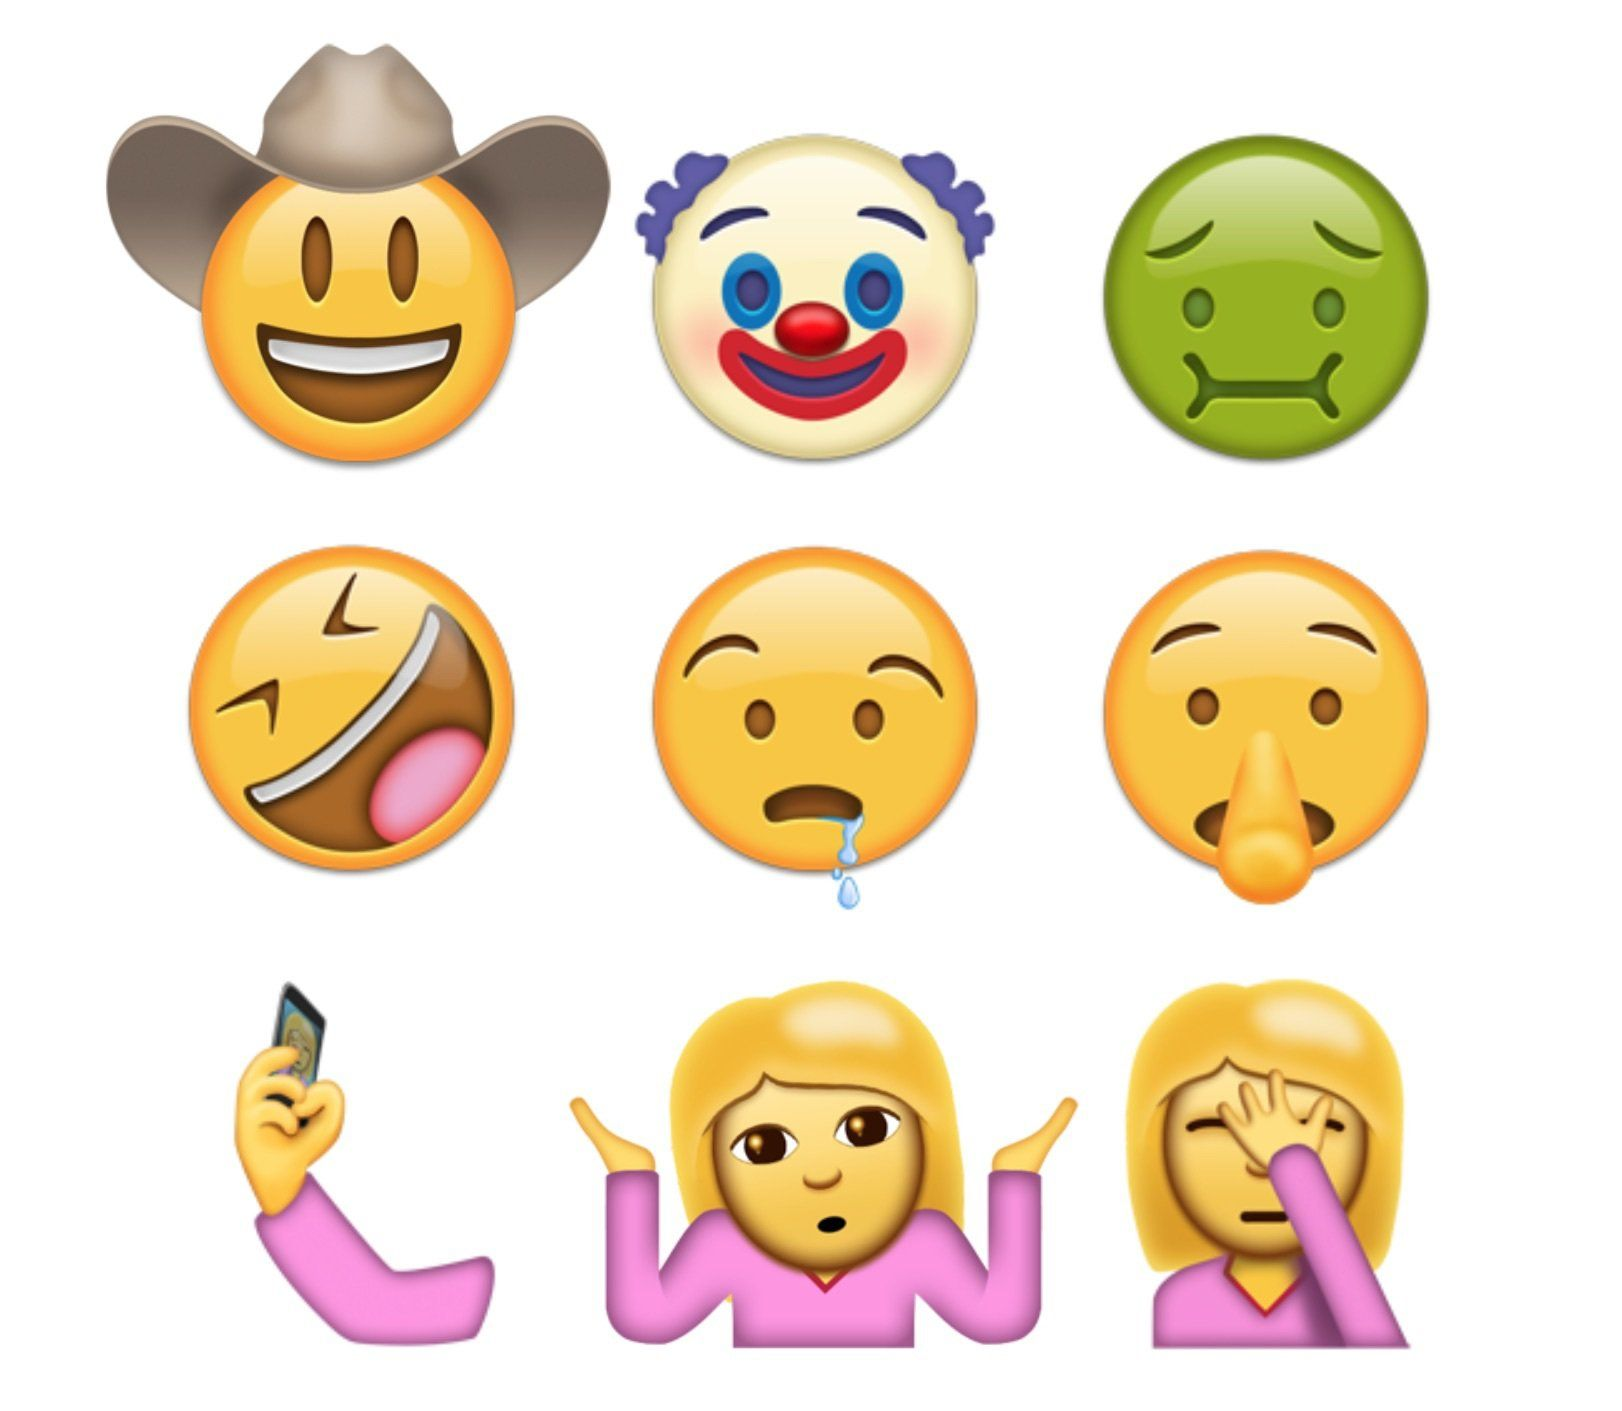 New Emoji Candidates To Be Voted On In Spring 2016